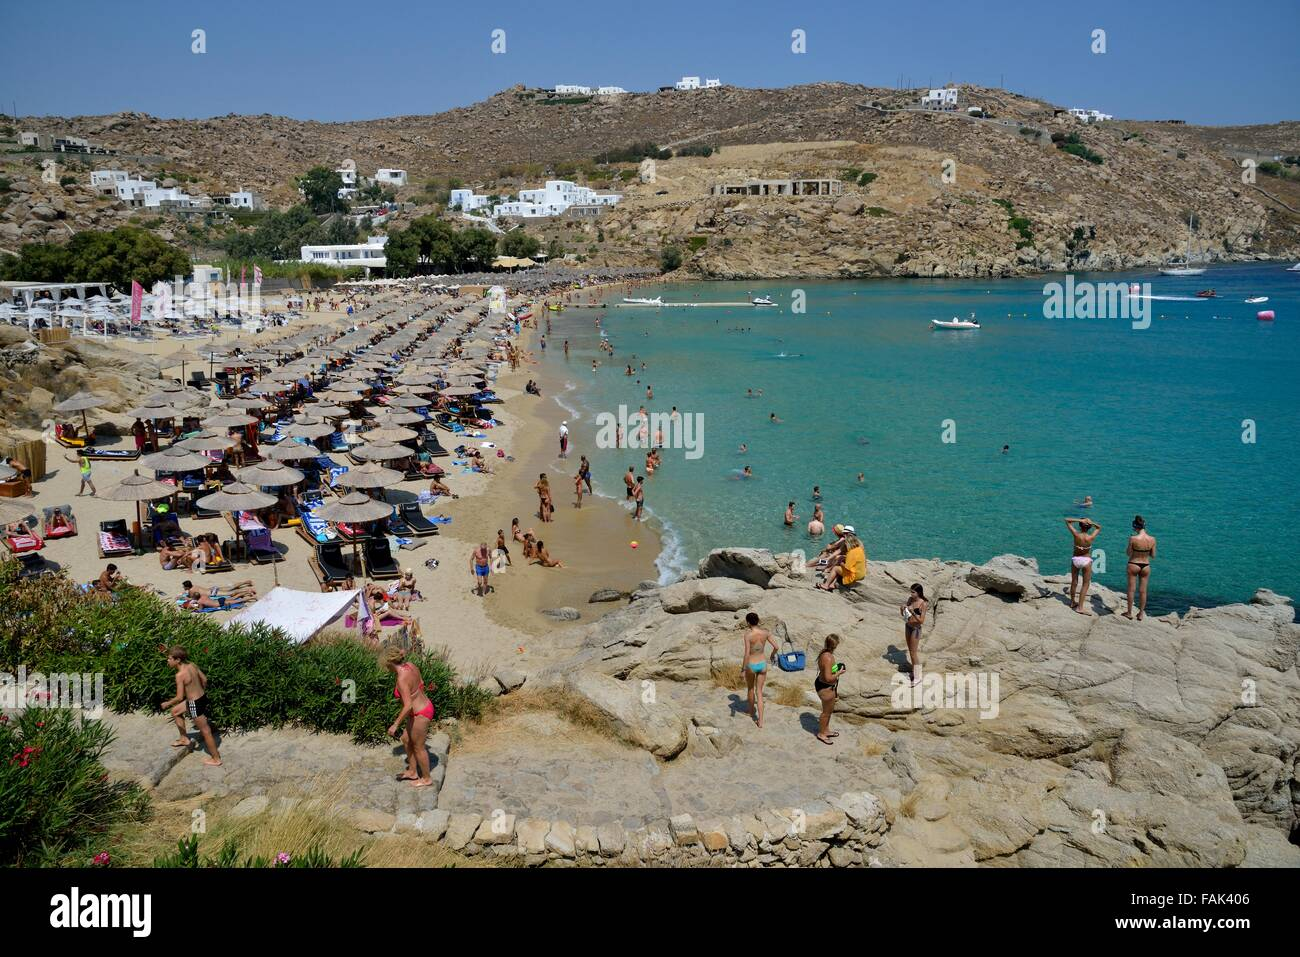 Best Island Beaches For Partying Mykonos St Barts: Tourists On Super Paradise Beach, Mykonos, Cyclades